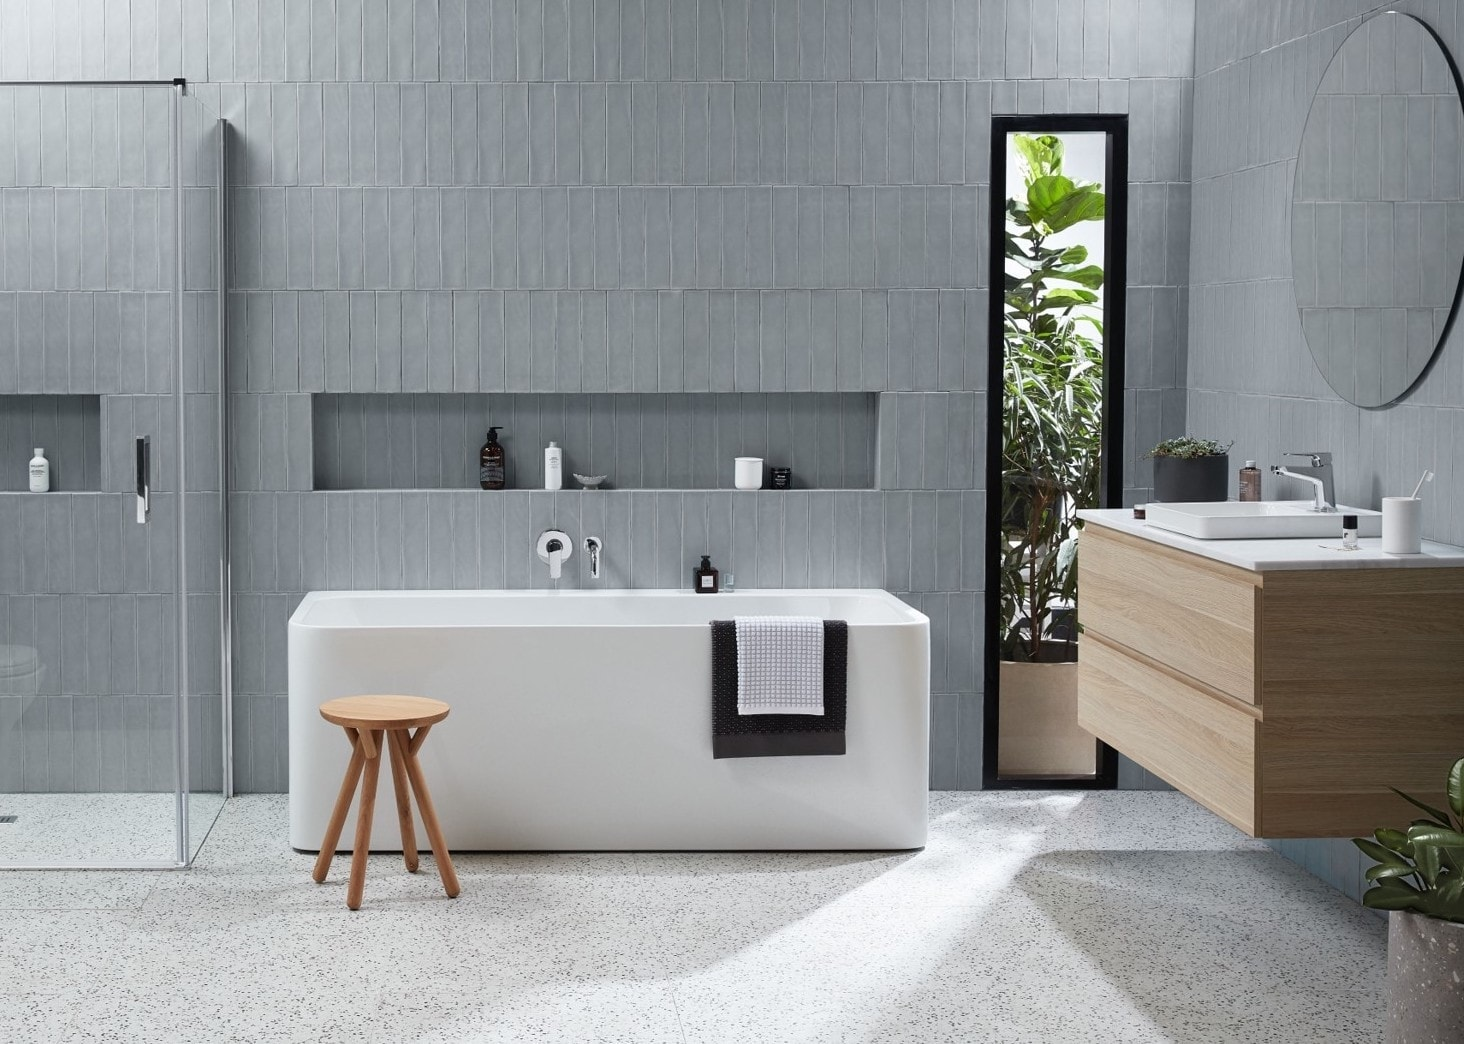 reece back to wall bath in grey tile bathroom with floating timber vanity